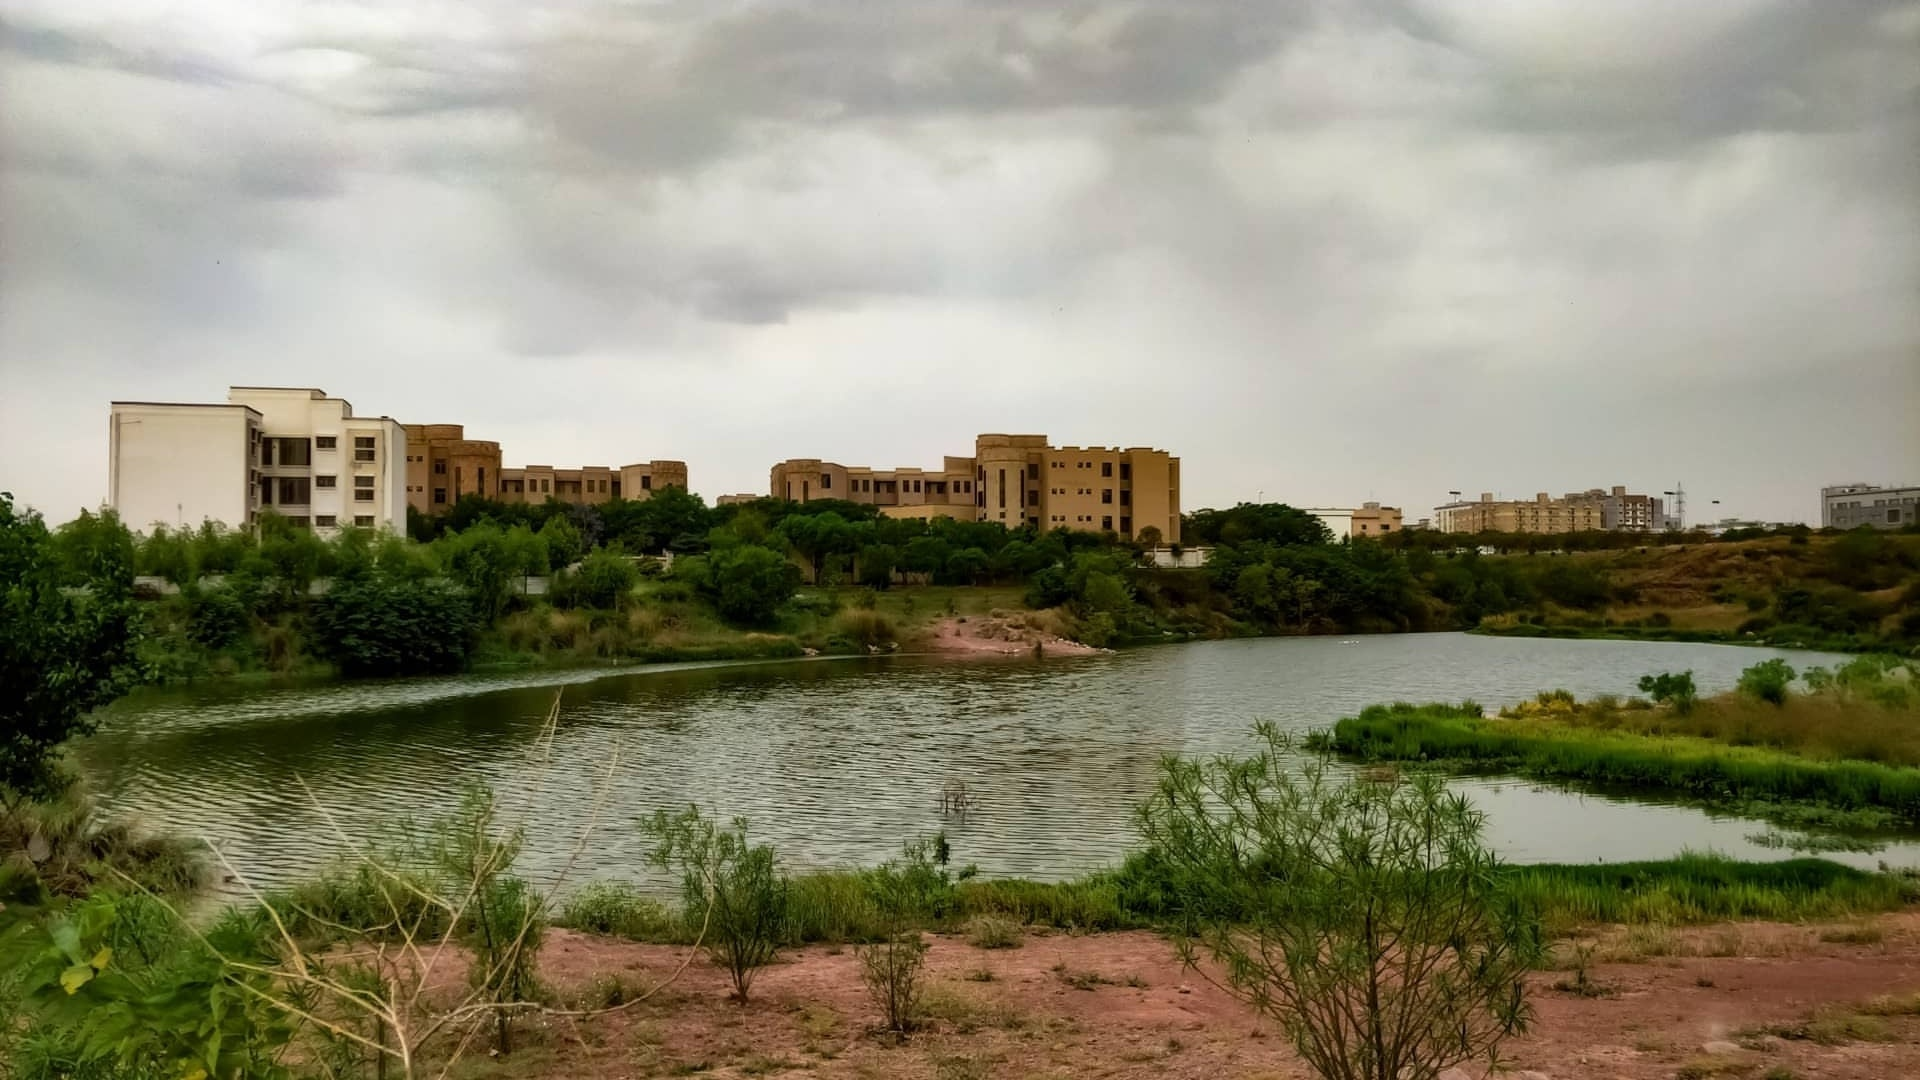 What is it like to study at NUST Islamabad? - Quora